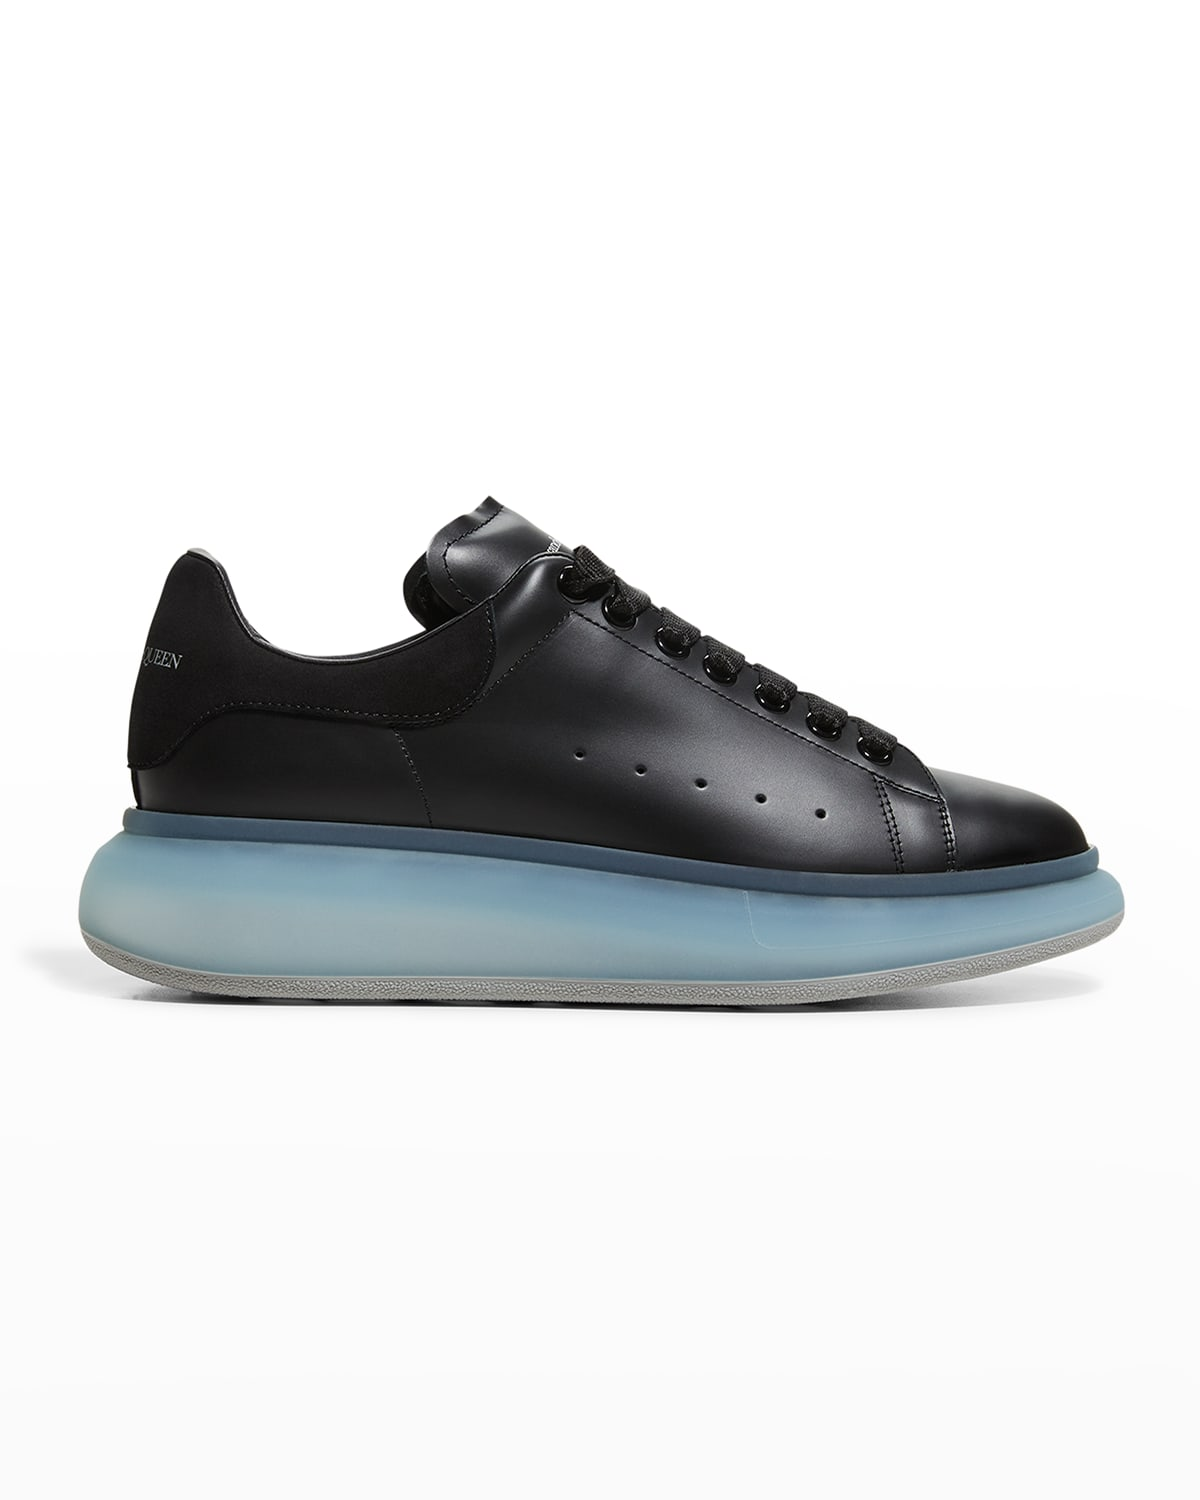 Men's Oversized Leather Clear-Sole Sneakers